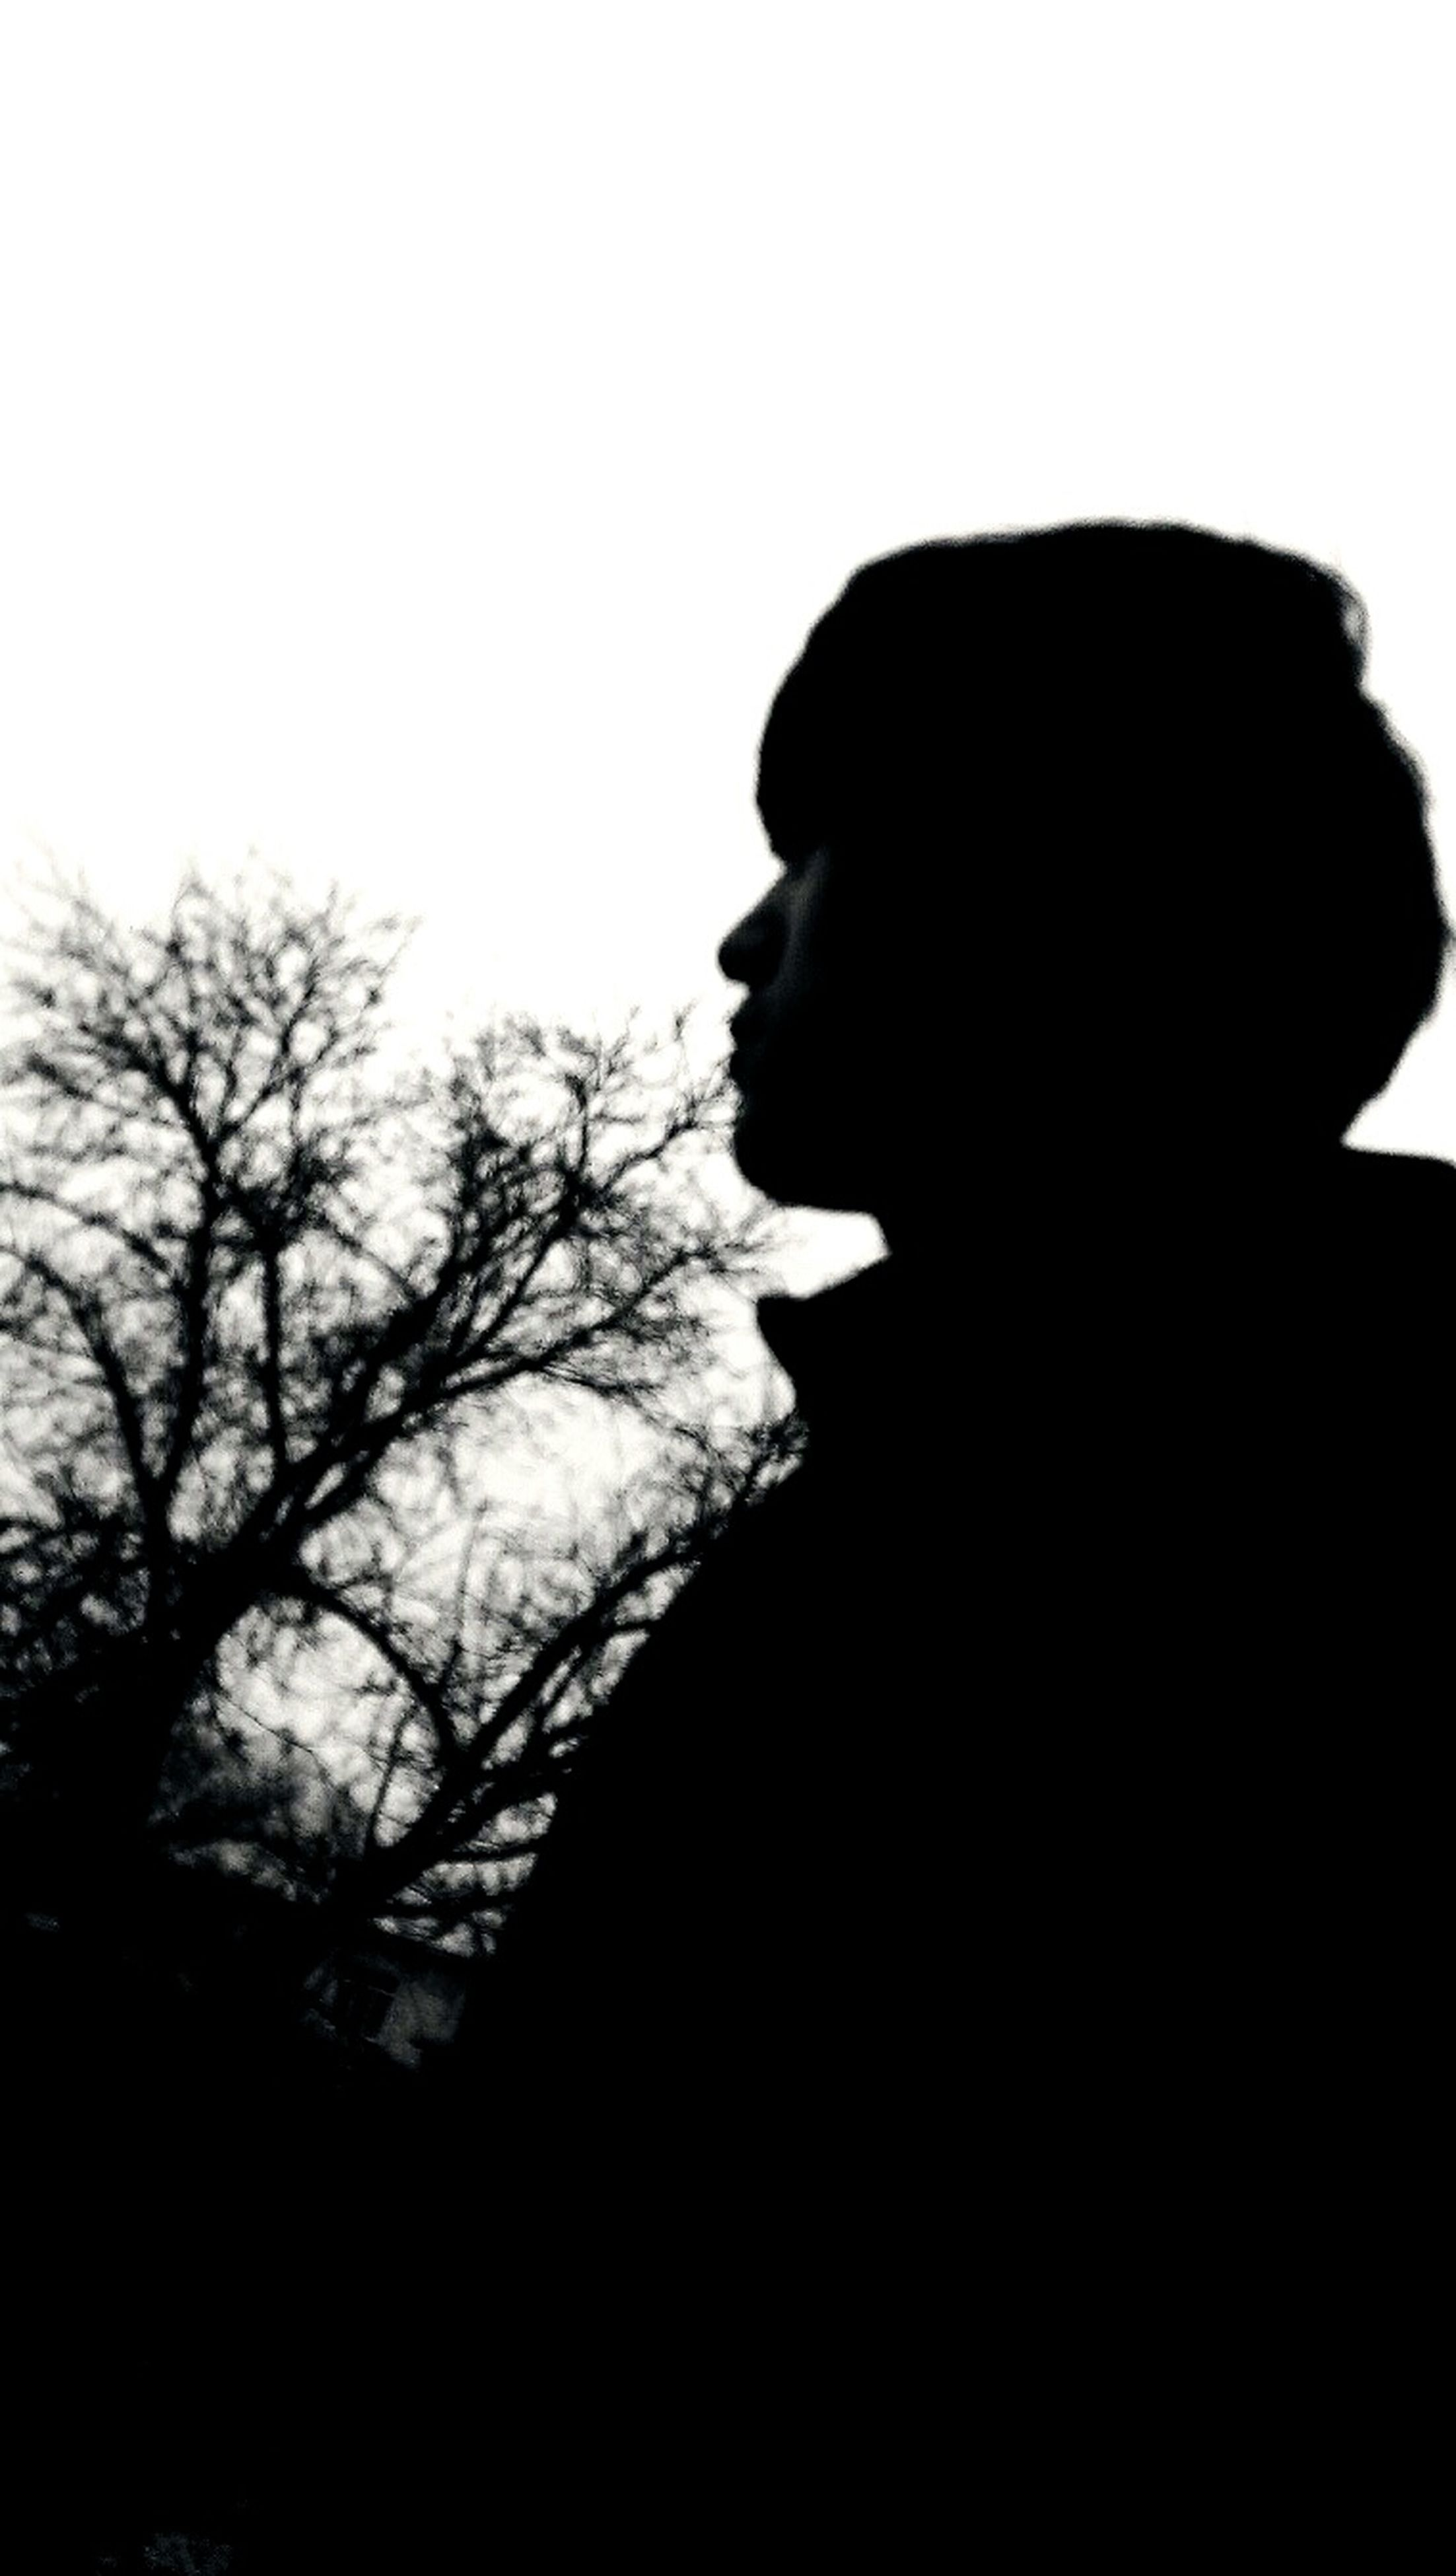 silhouette, lifestyles, headshot, contemplation, copy space, young adult, waist up, leisure activity, side view, looking away, standing, head and shoulders, young women, three quarter length, clear sky, sky, person, tree